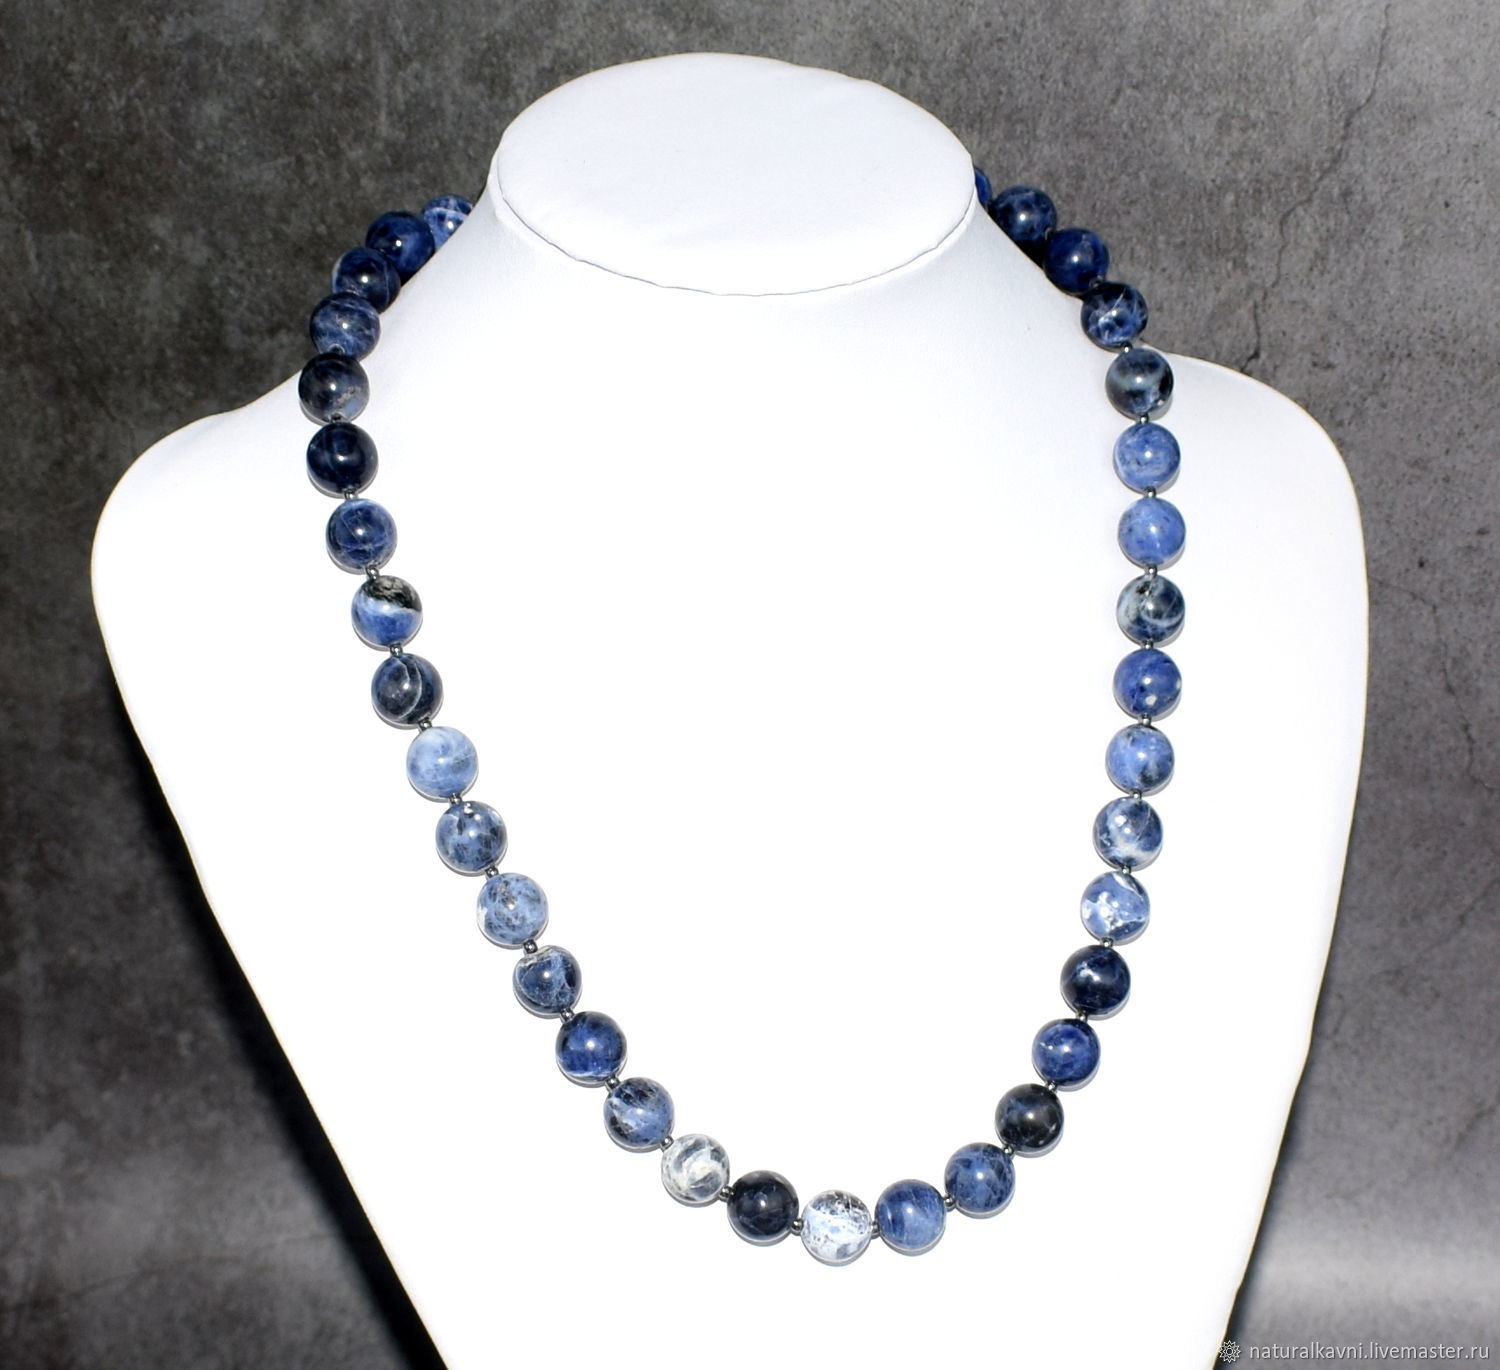 Beads made of natural stone sodalite, Beads2, Moscow,  Фото №1